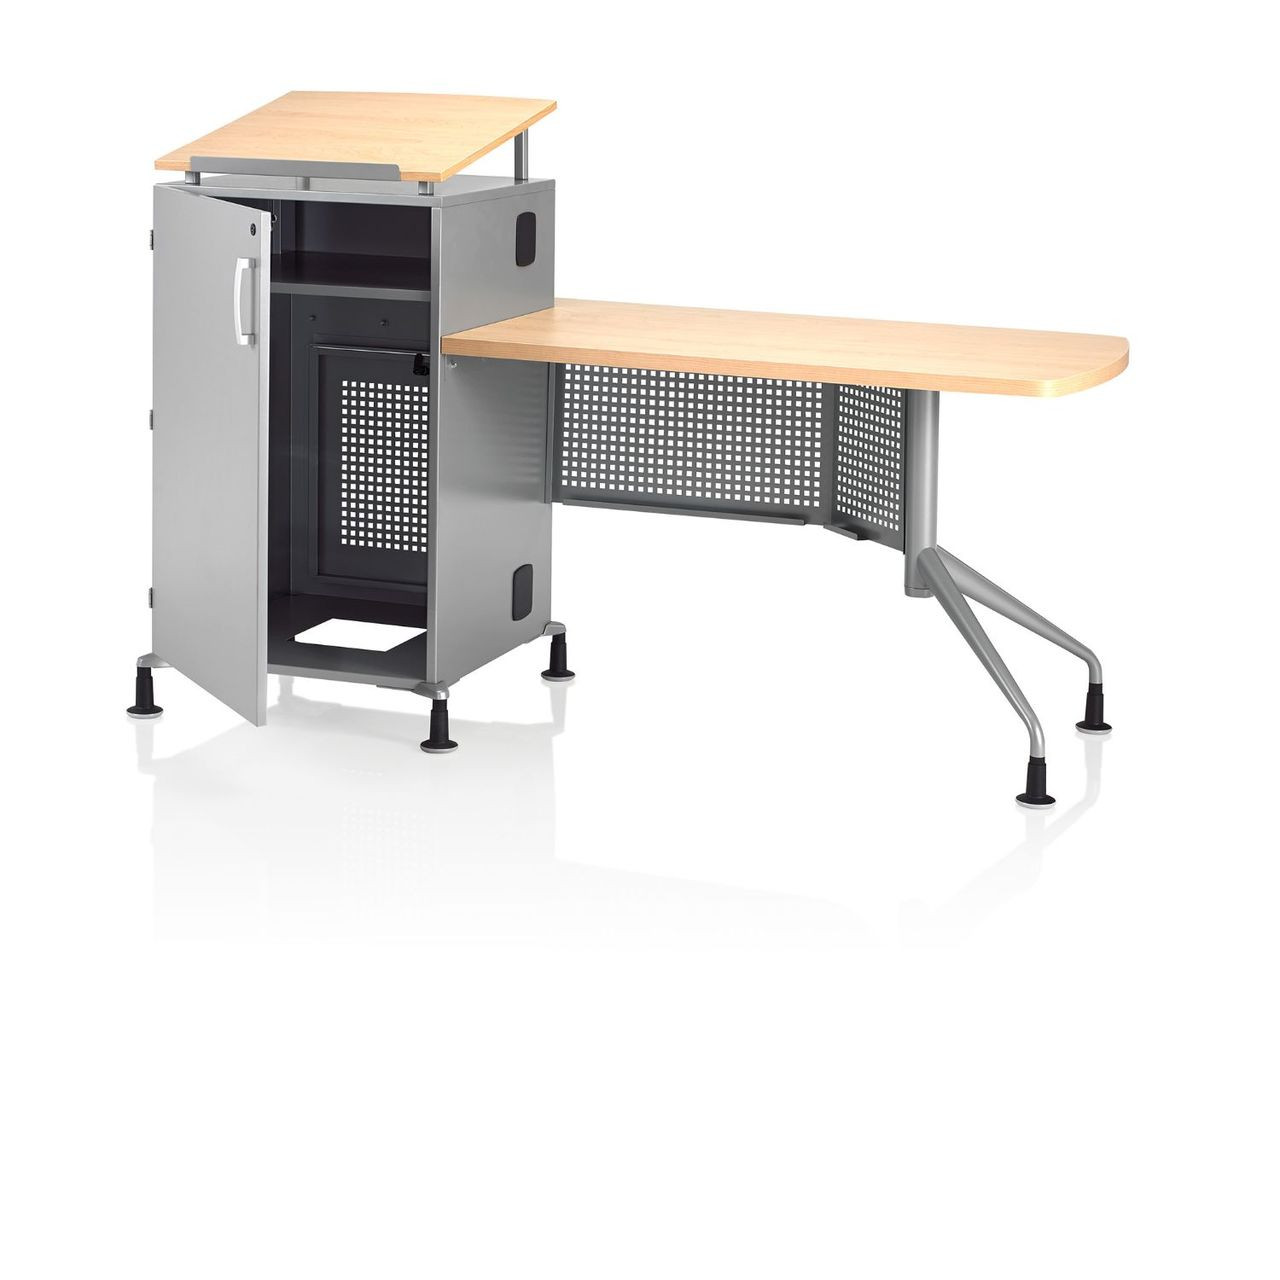 Ki all terrain atmtd2454 74p wsr mobile instructor 39 s desk for Furniture 63366